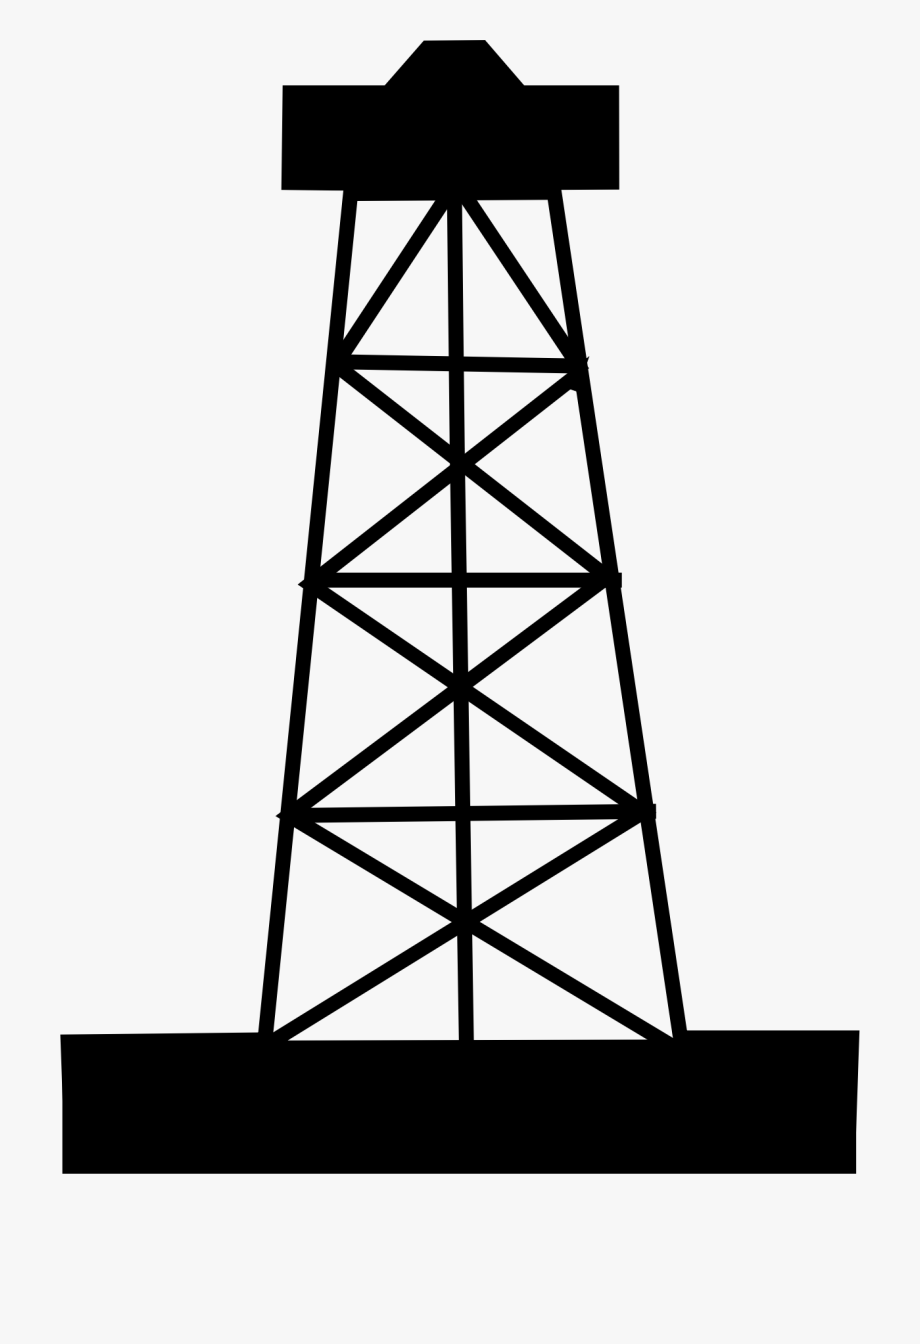 Oil and gas clipart black and white png royalty free library Oil Or Gas Well Clip Art - Oil Rig Clipart Png #159608 - Free ... png royalty free library